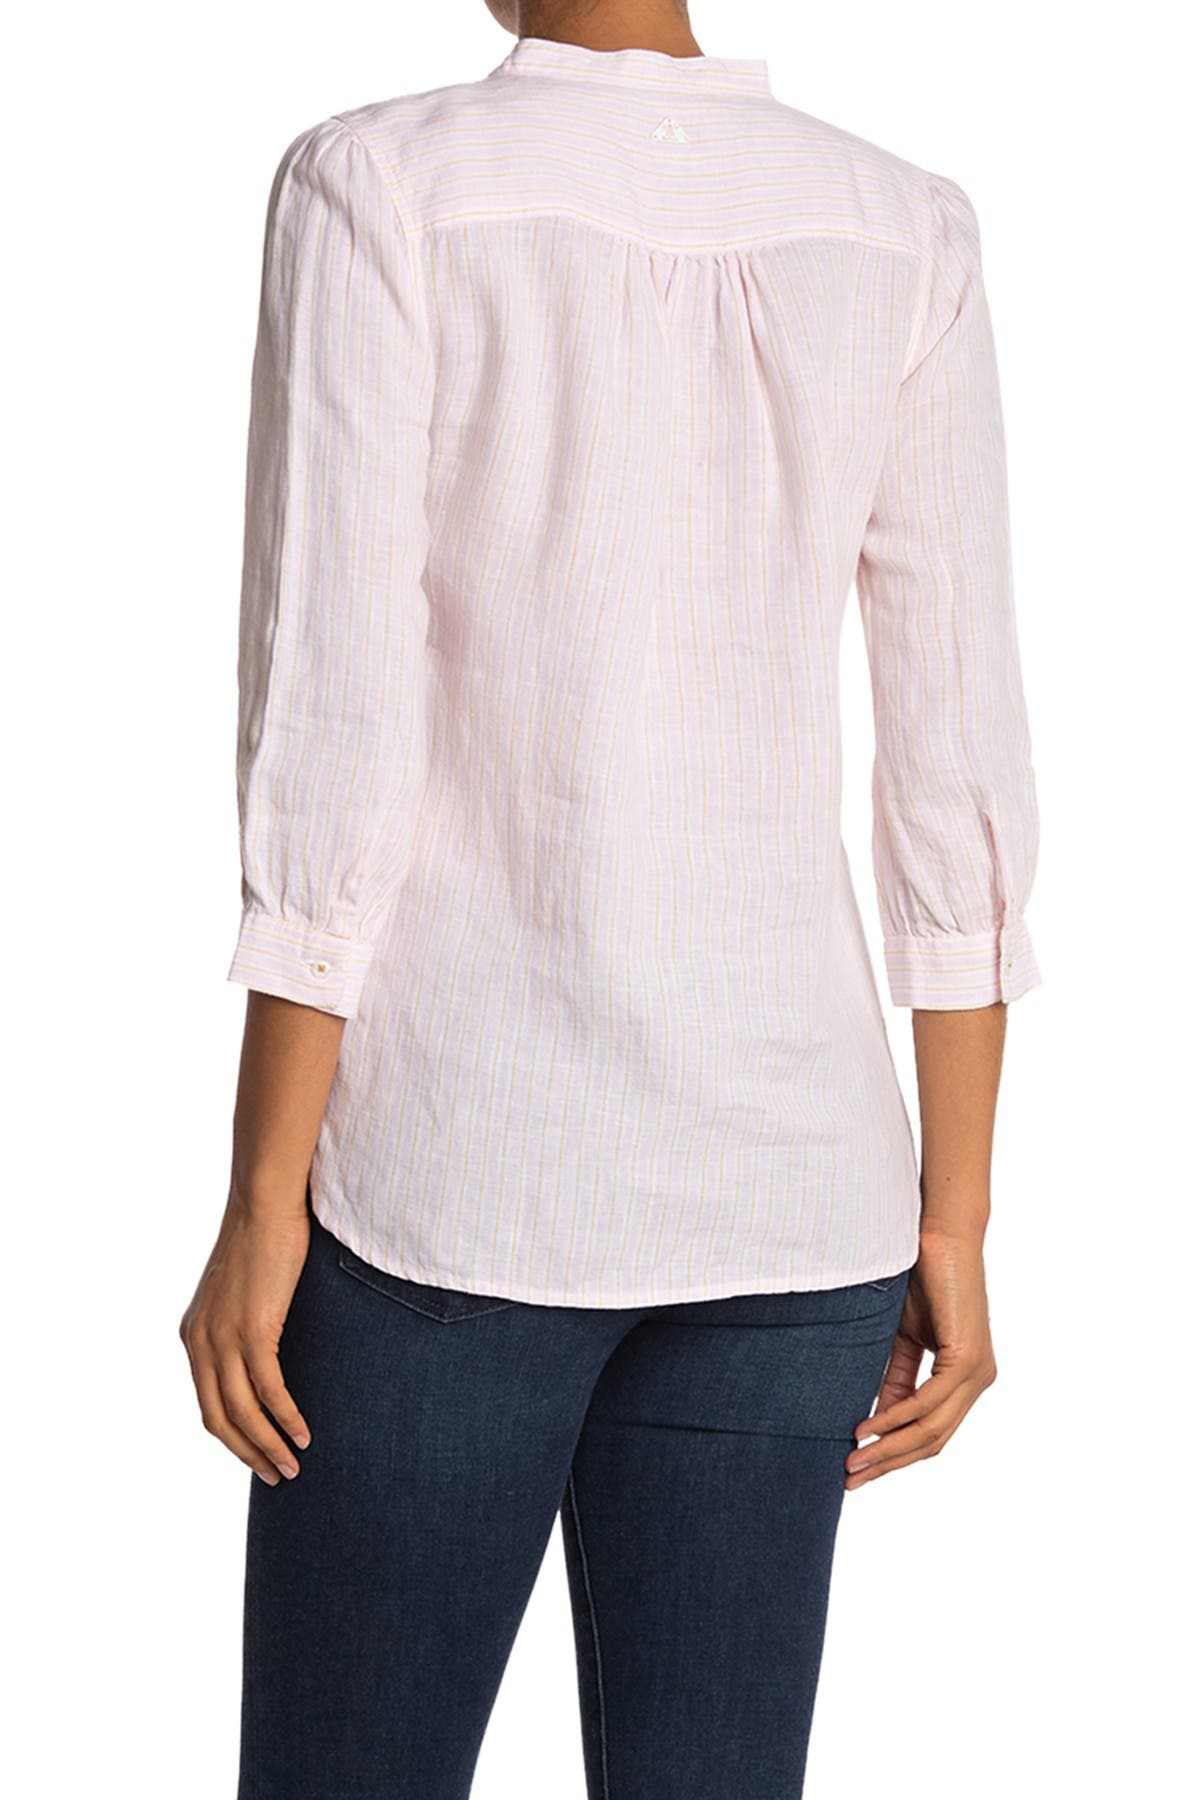 Image of Barbour Dover Striped Linen Blouse